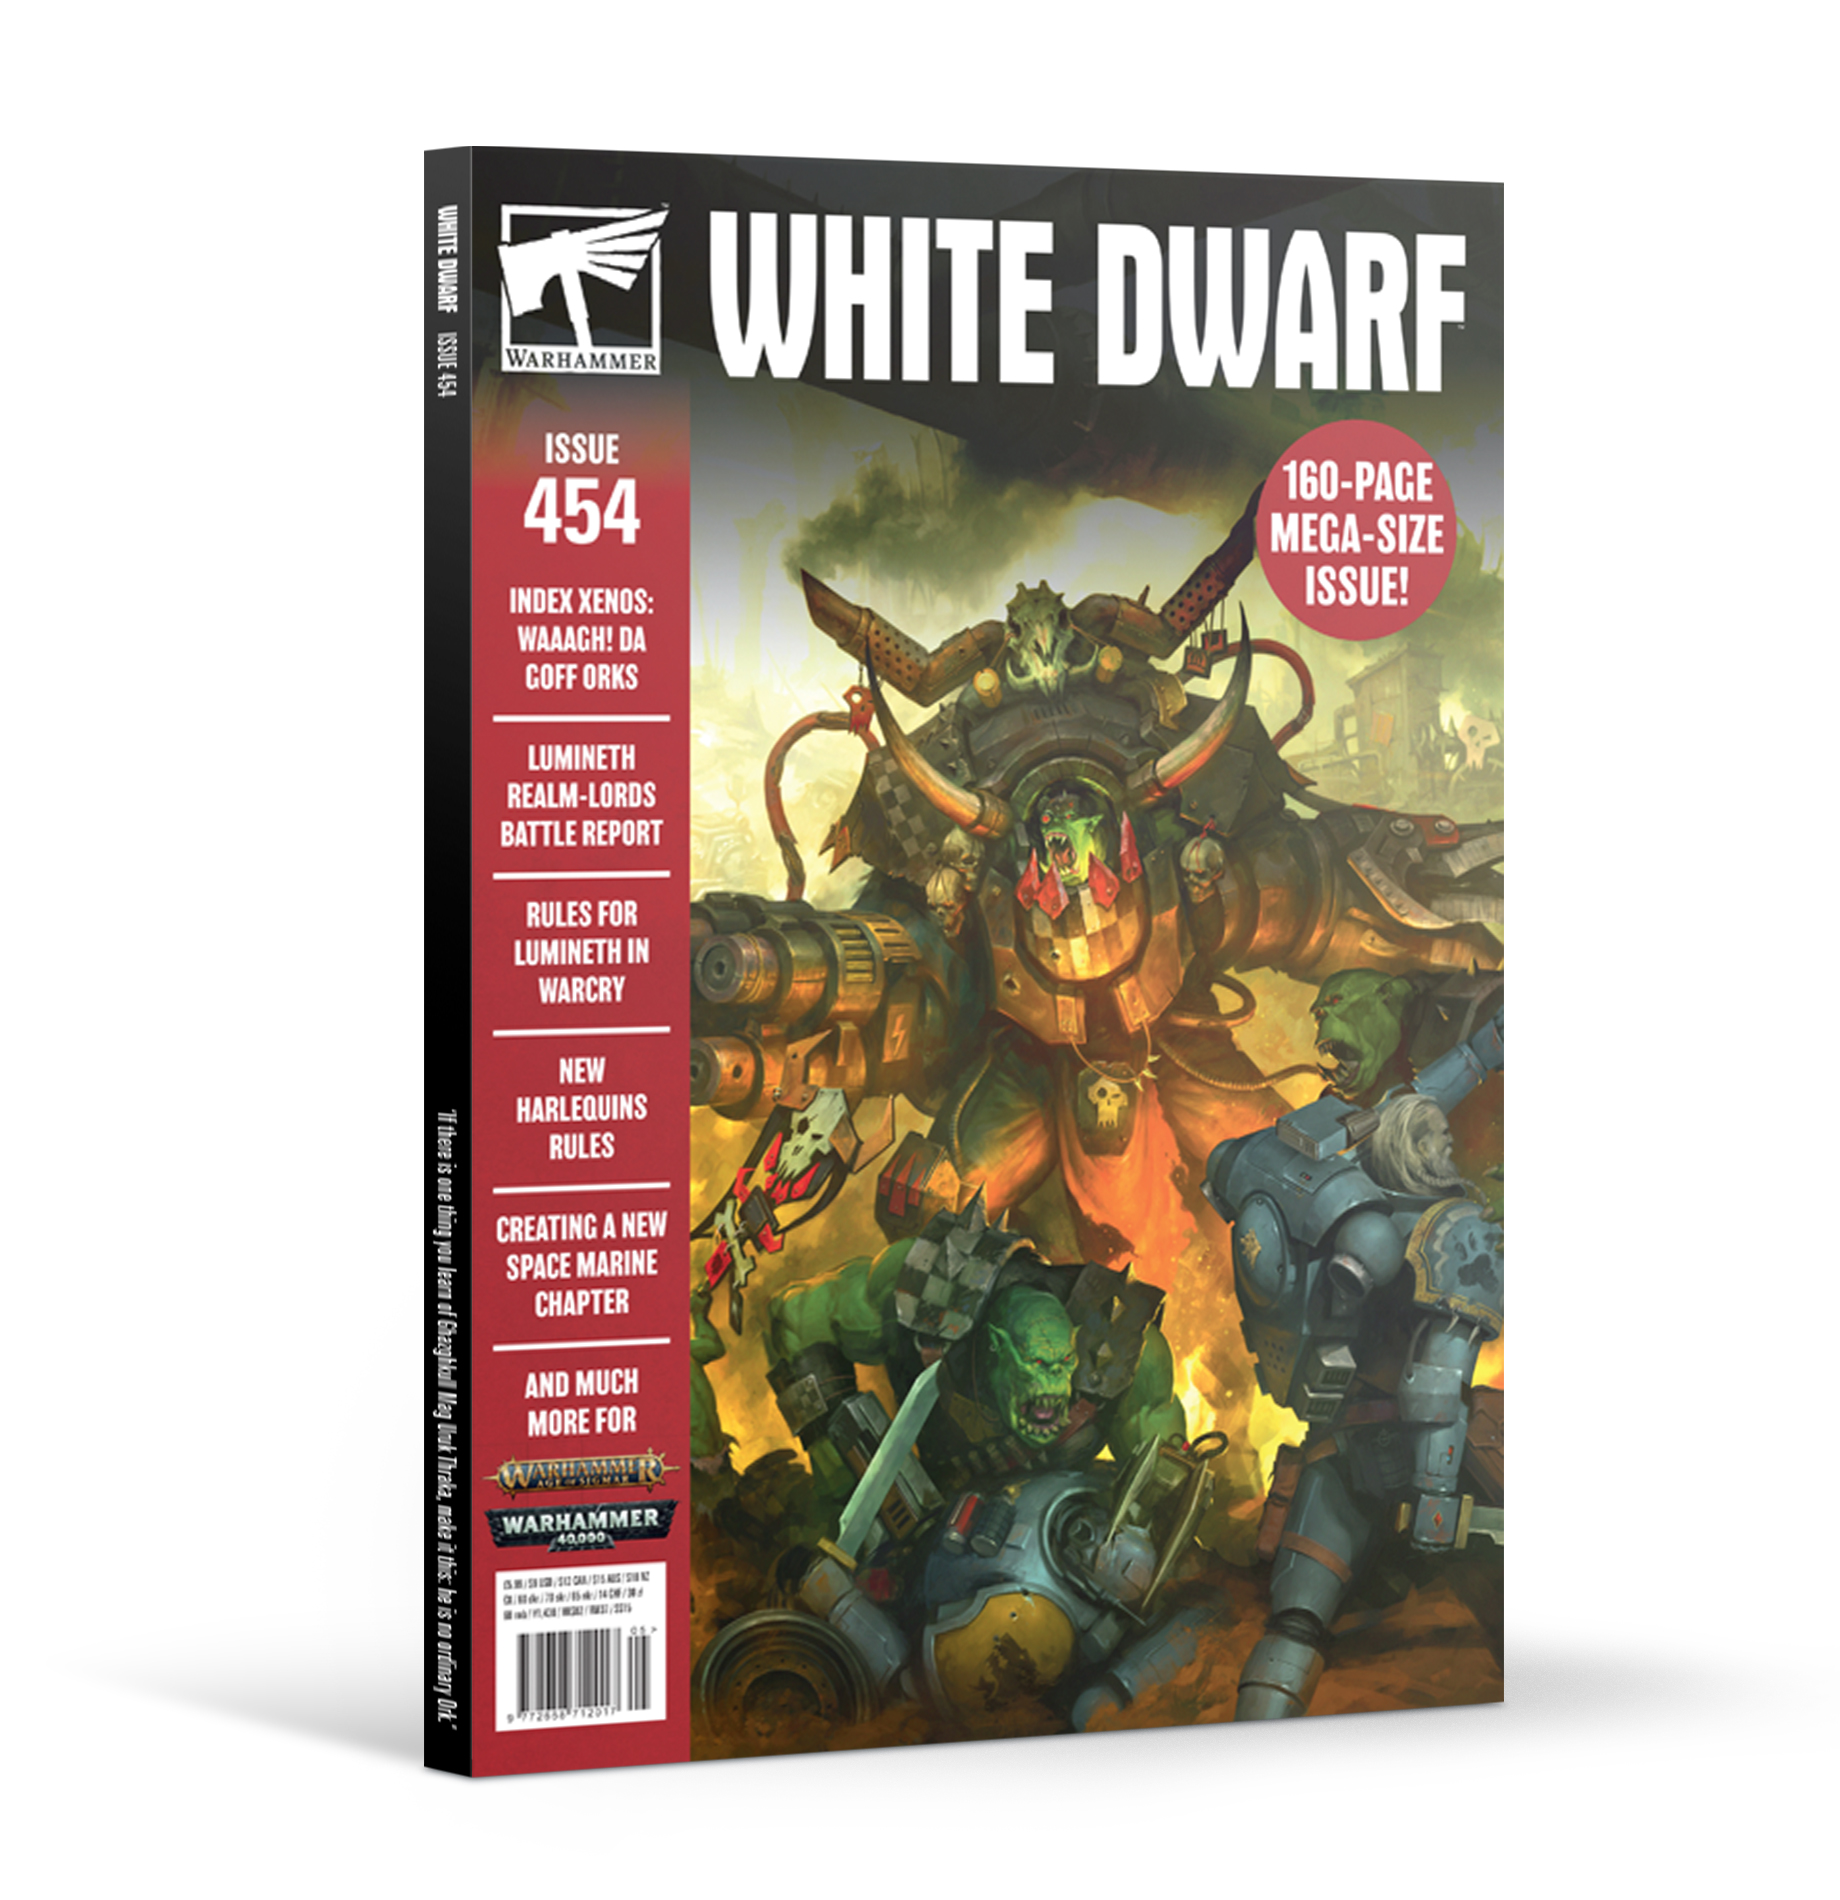 WHITE DWARF: ISSUE 454